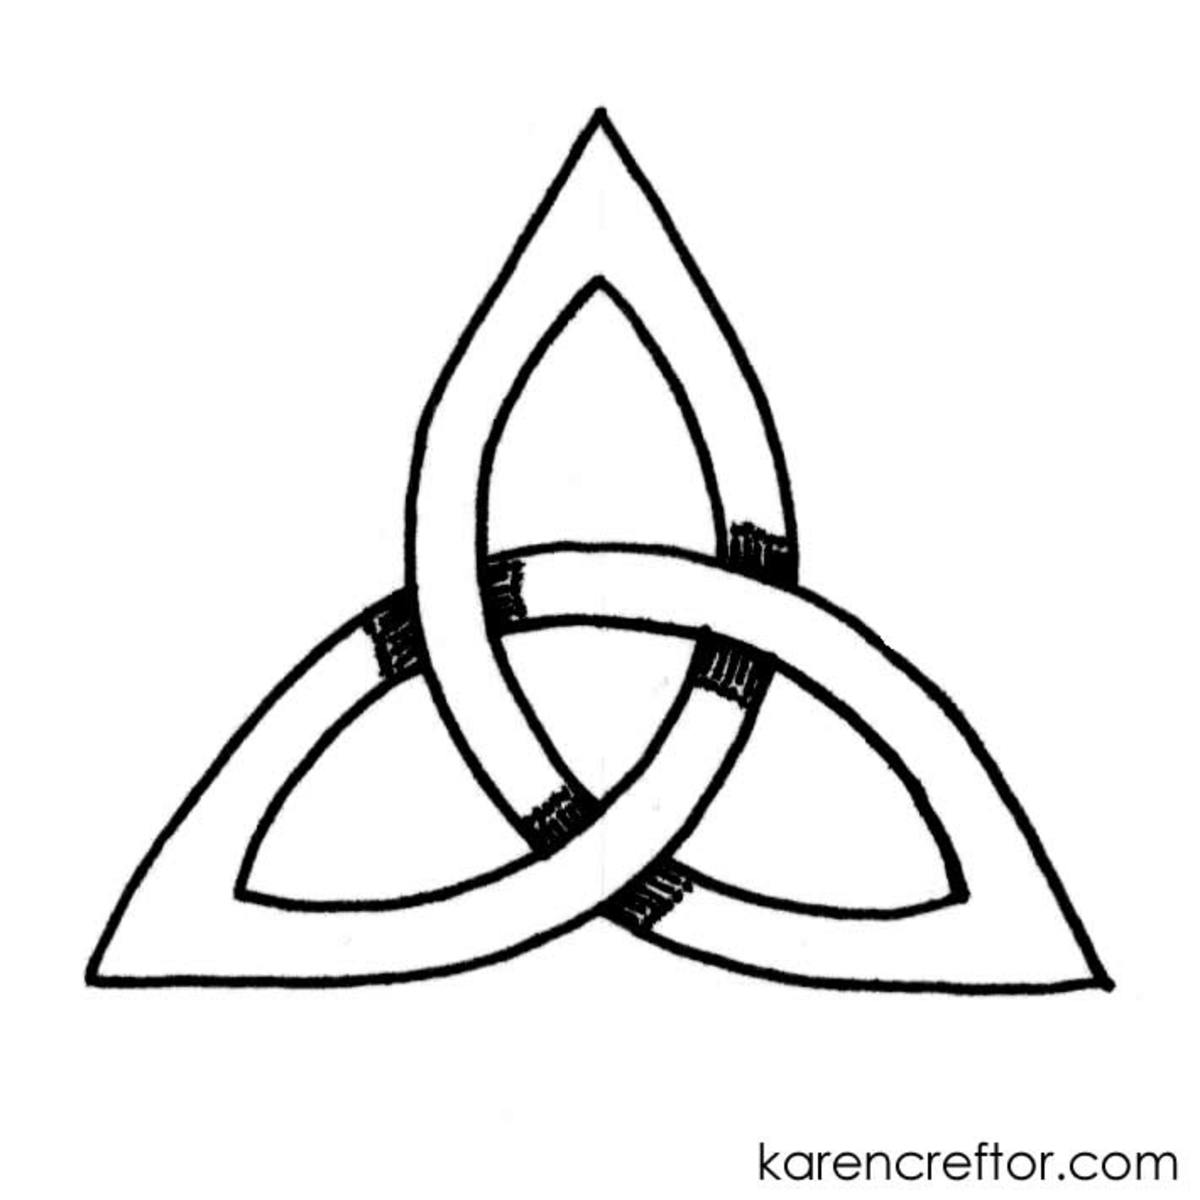 Quick and easy to draw a triquetra using the compass method which is the most precise!